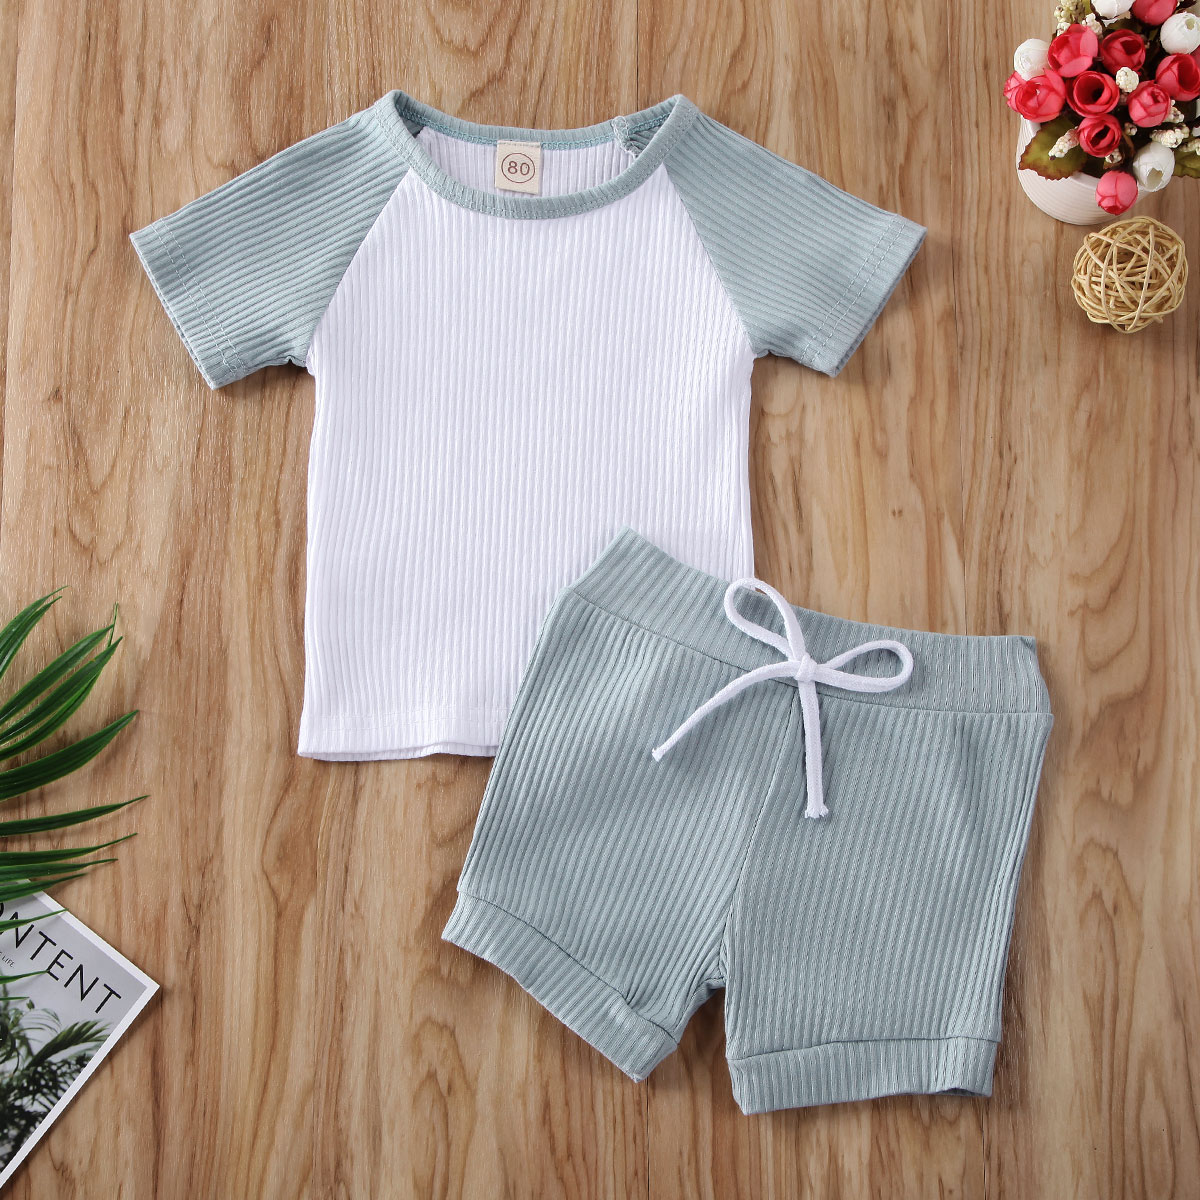 Pudcoco Toddler Baby Boy Girl Clothes Short Sleeve T-Shirt Tops Short Pants 2Pcs Outfits Cotton Clothes Causal Set